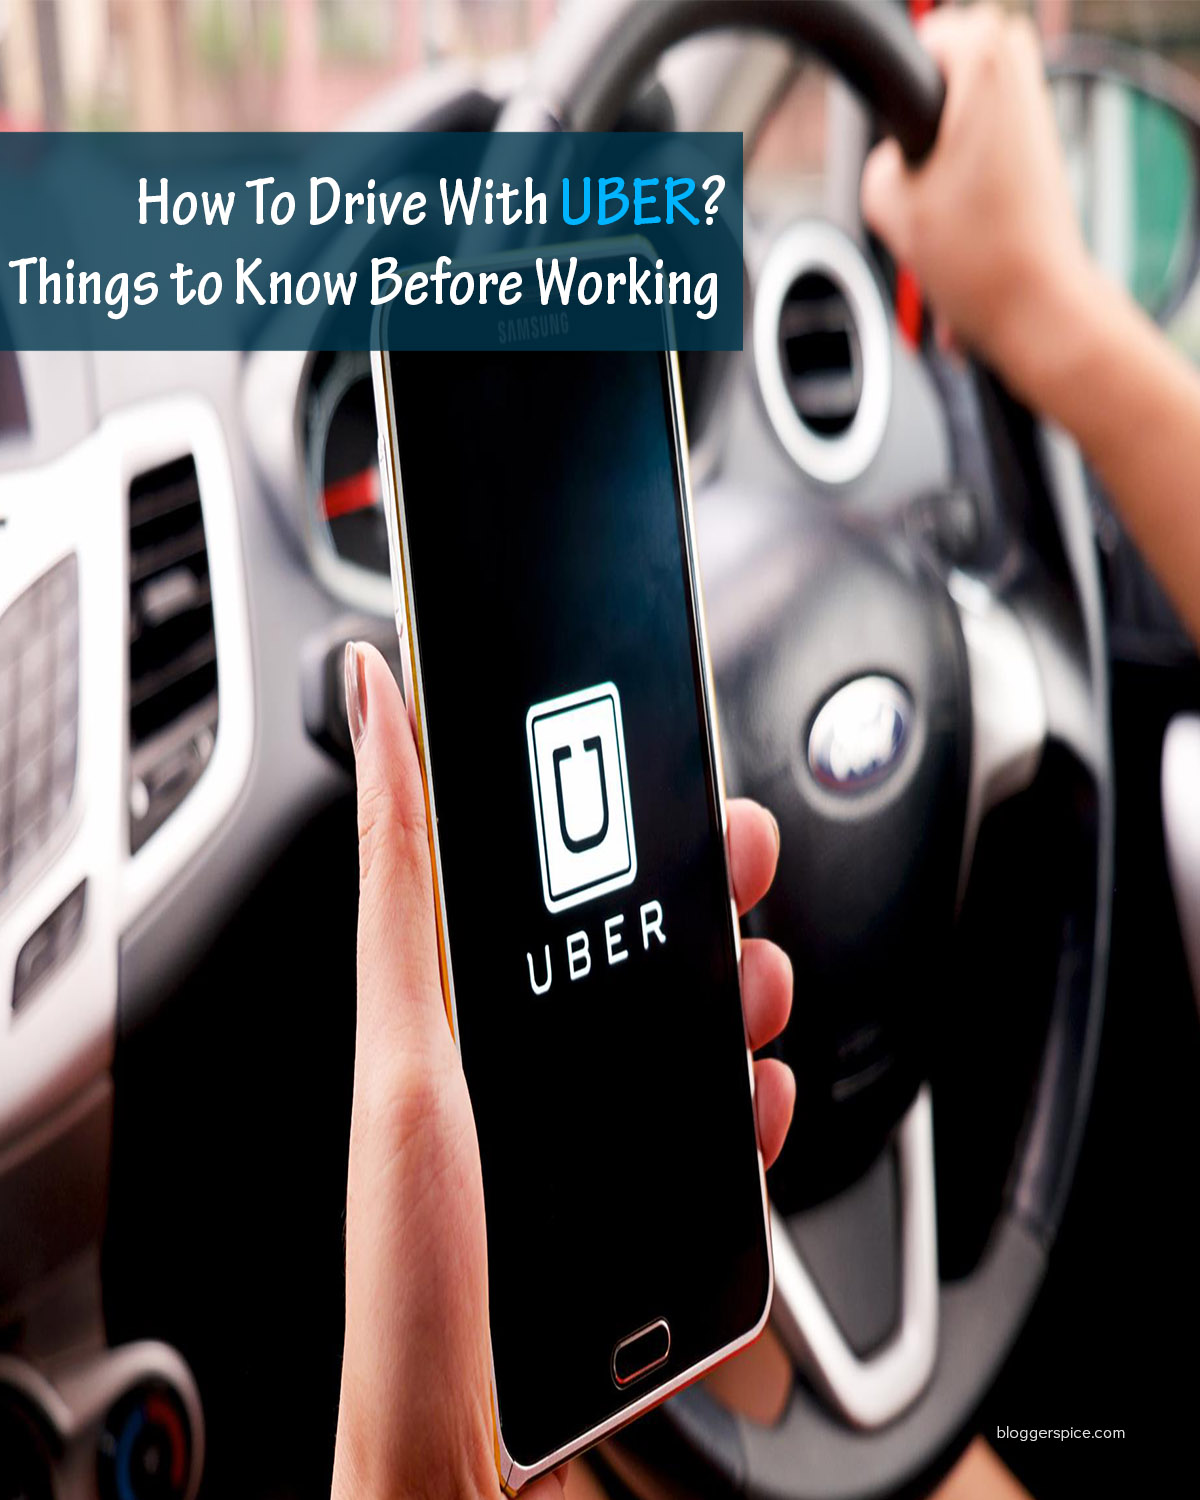 How To Drive With Uber?